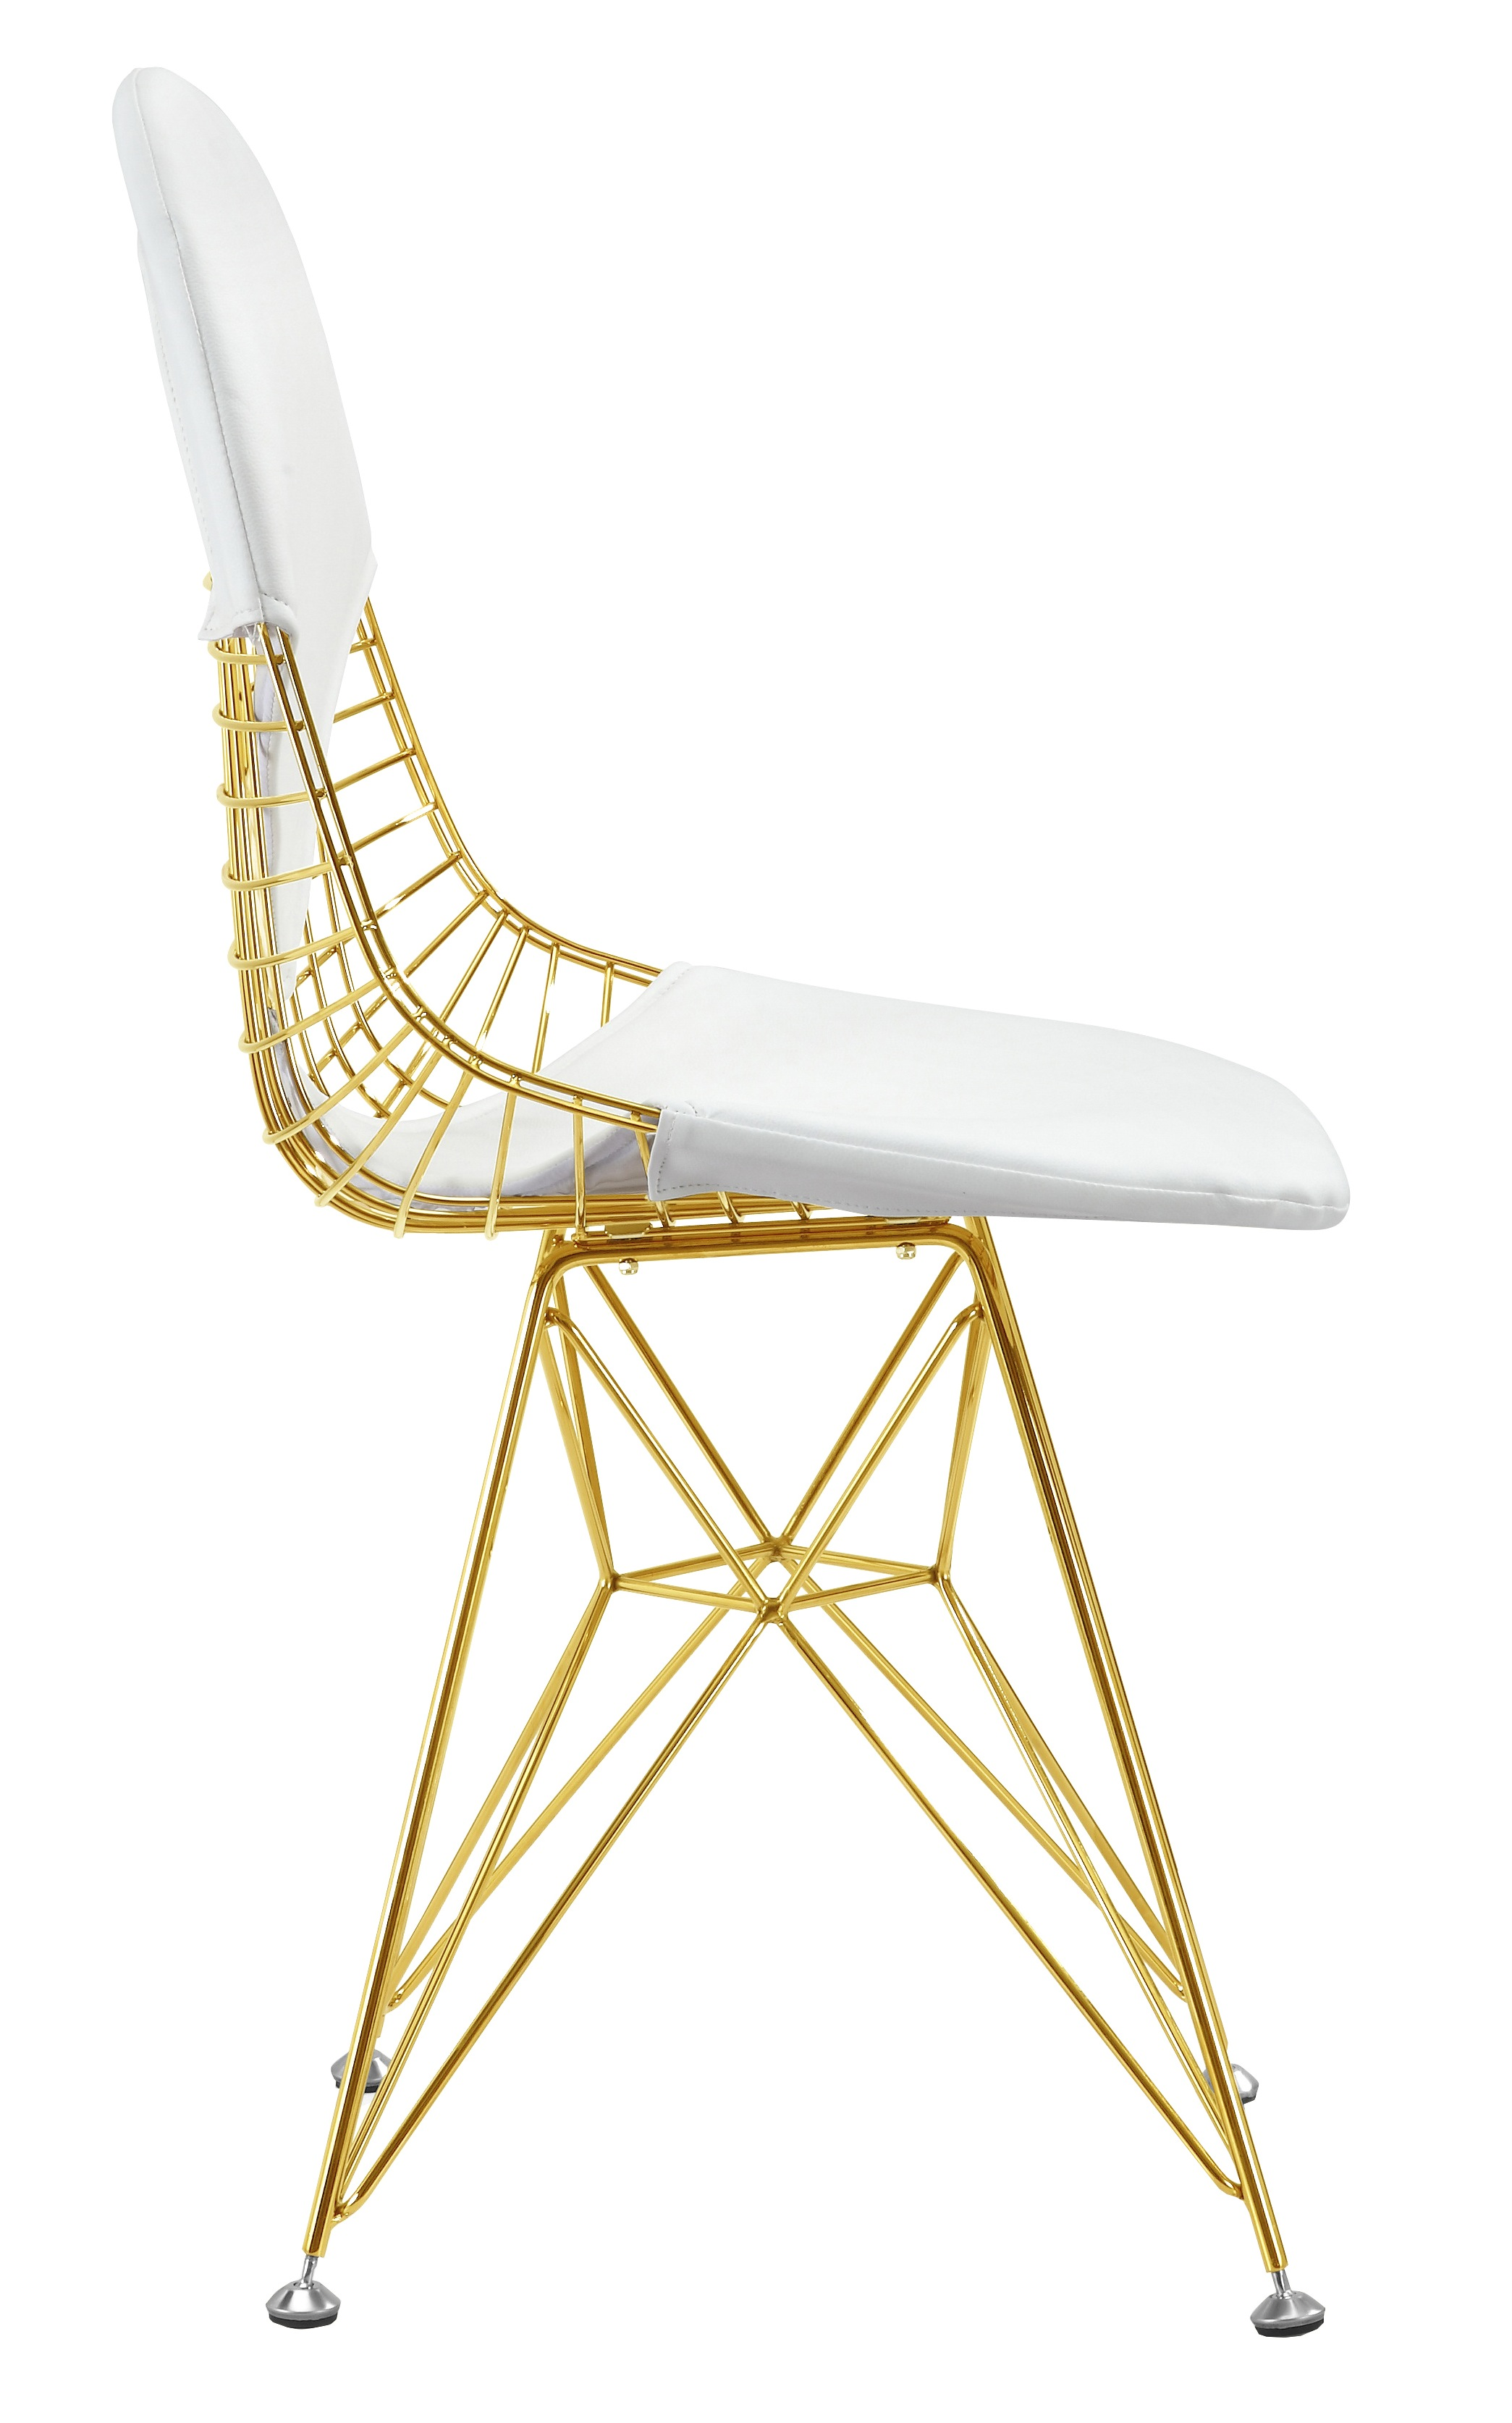 wire-gold-chair-white-cushion.jpg